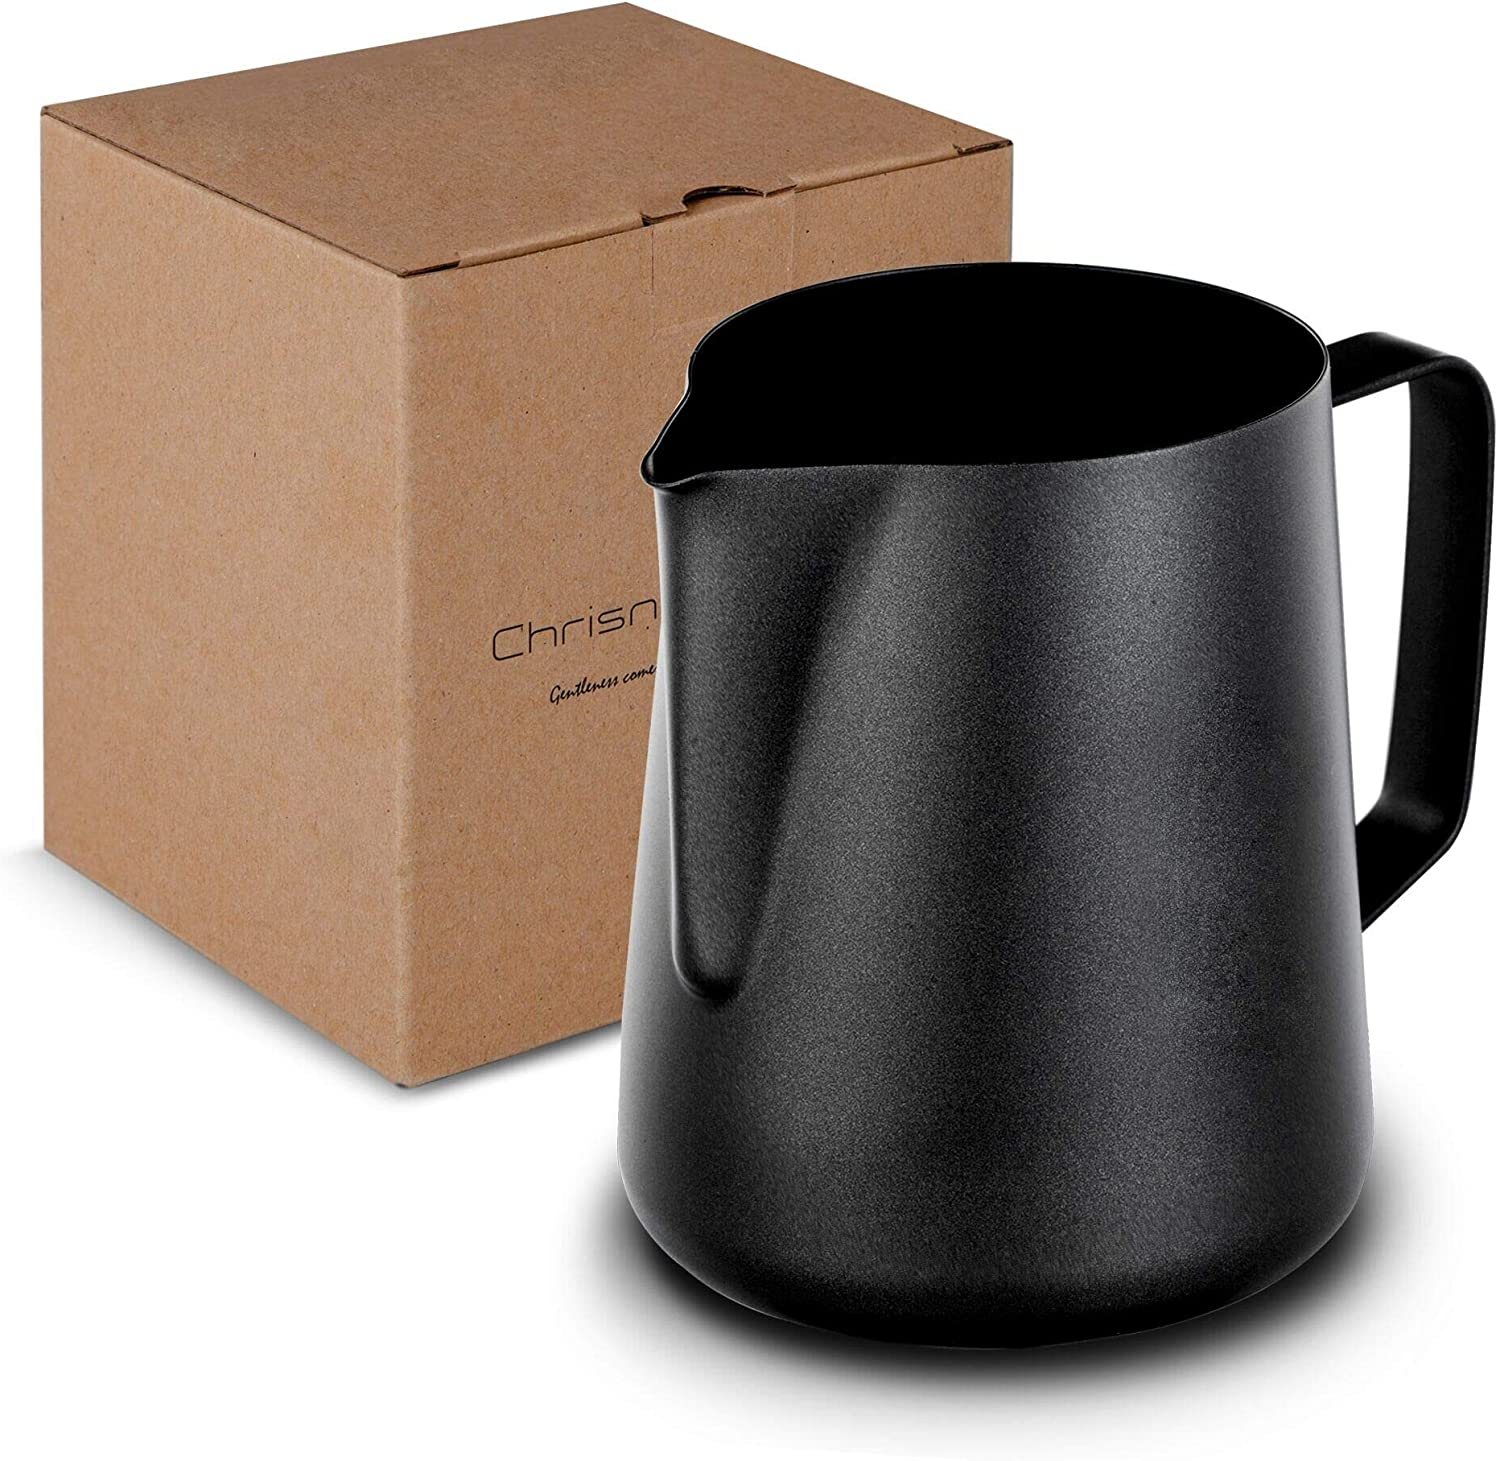 Milk Frothing Pitcher, Stainless Steel Creamer Non-Stick Teflon Frothing Pitcher 20 oz (600 ml), Matte Finish